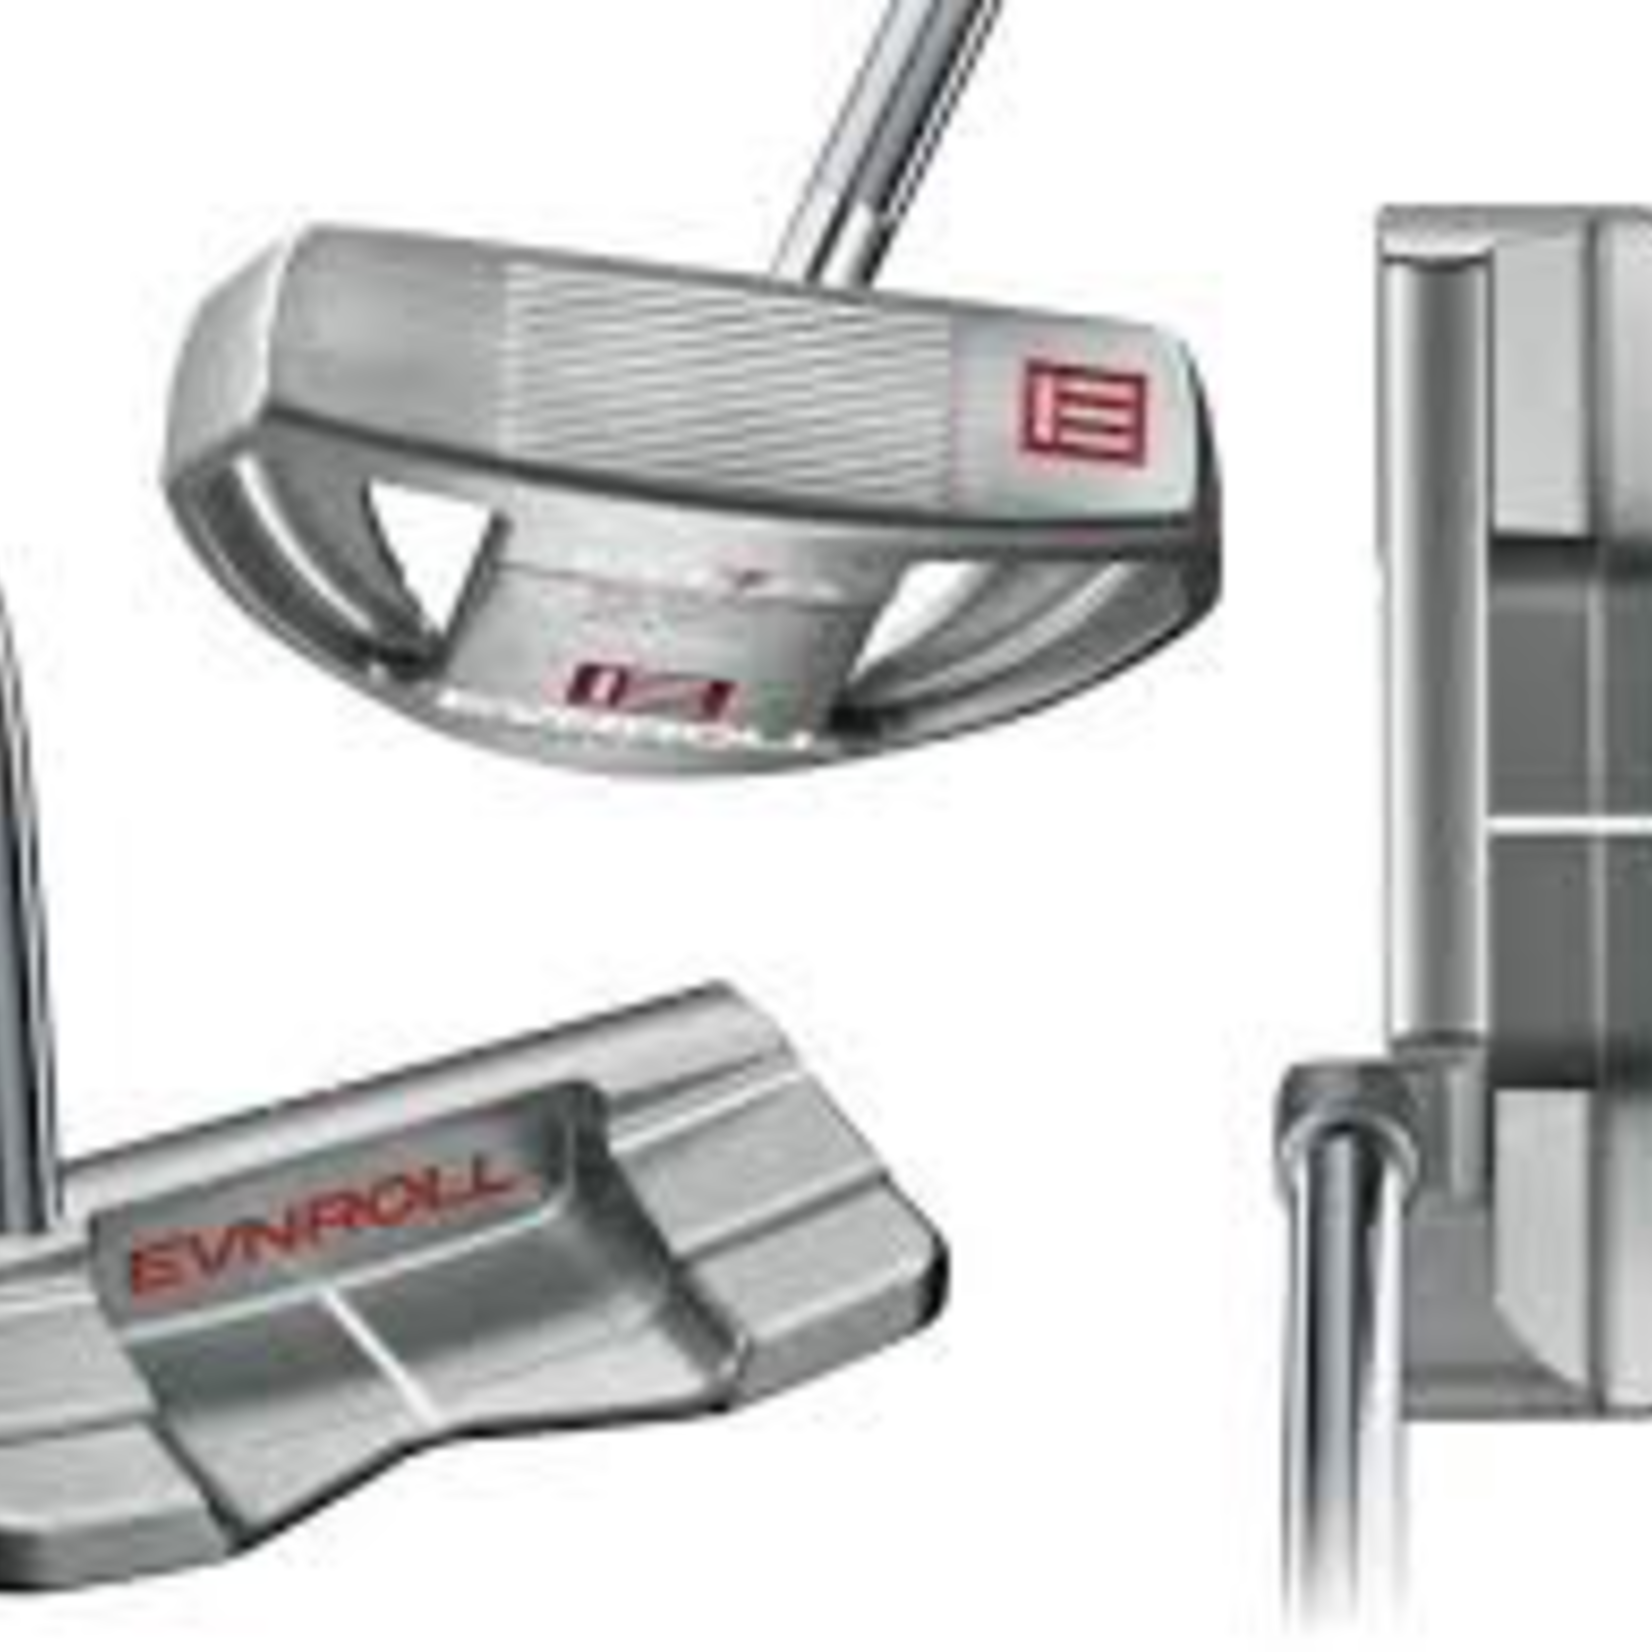 EVENROLL PUTTERS